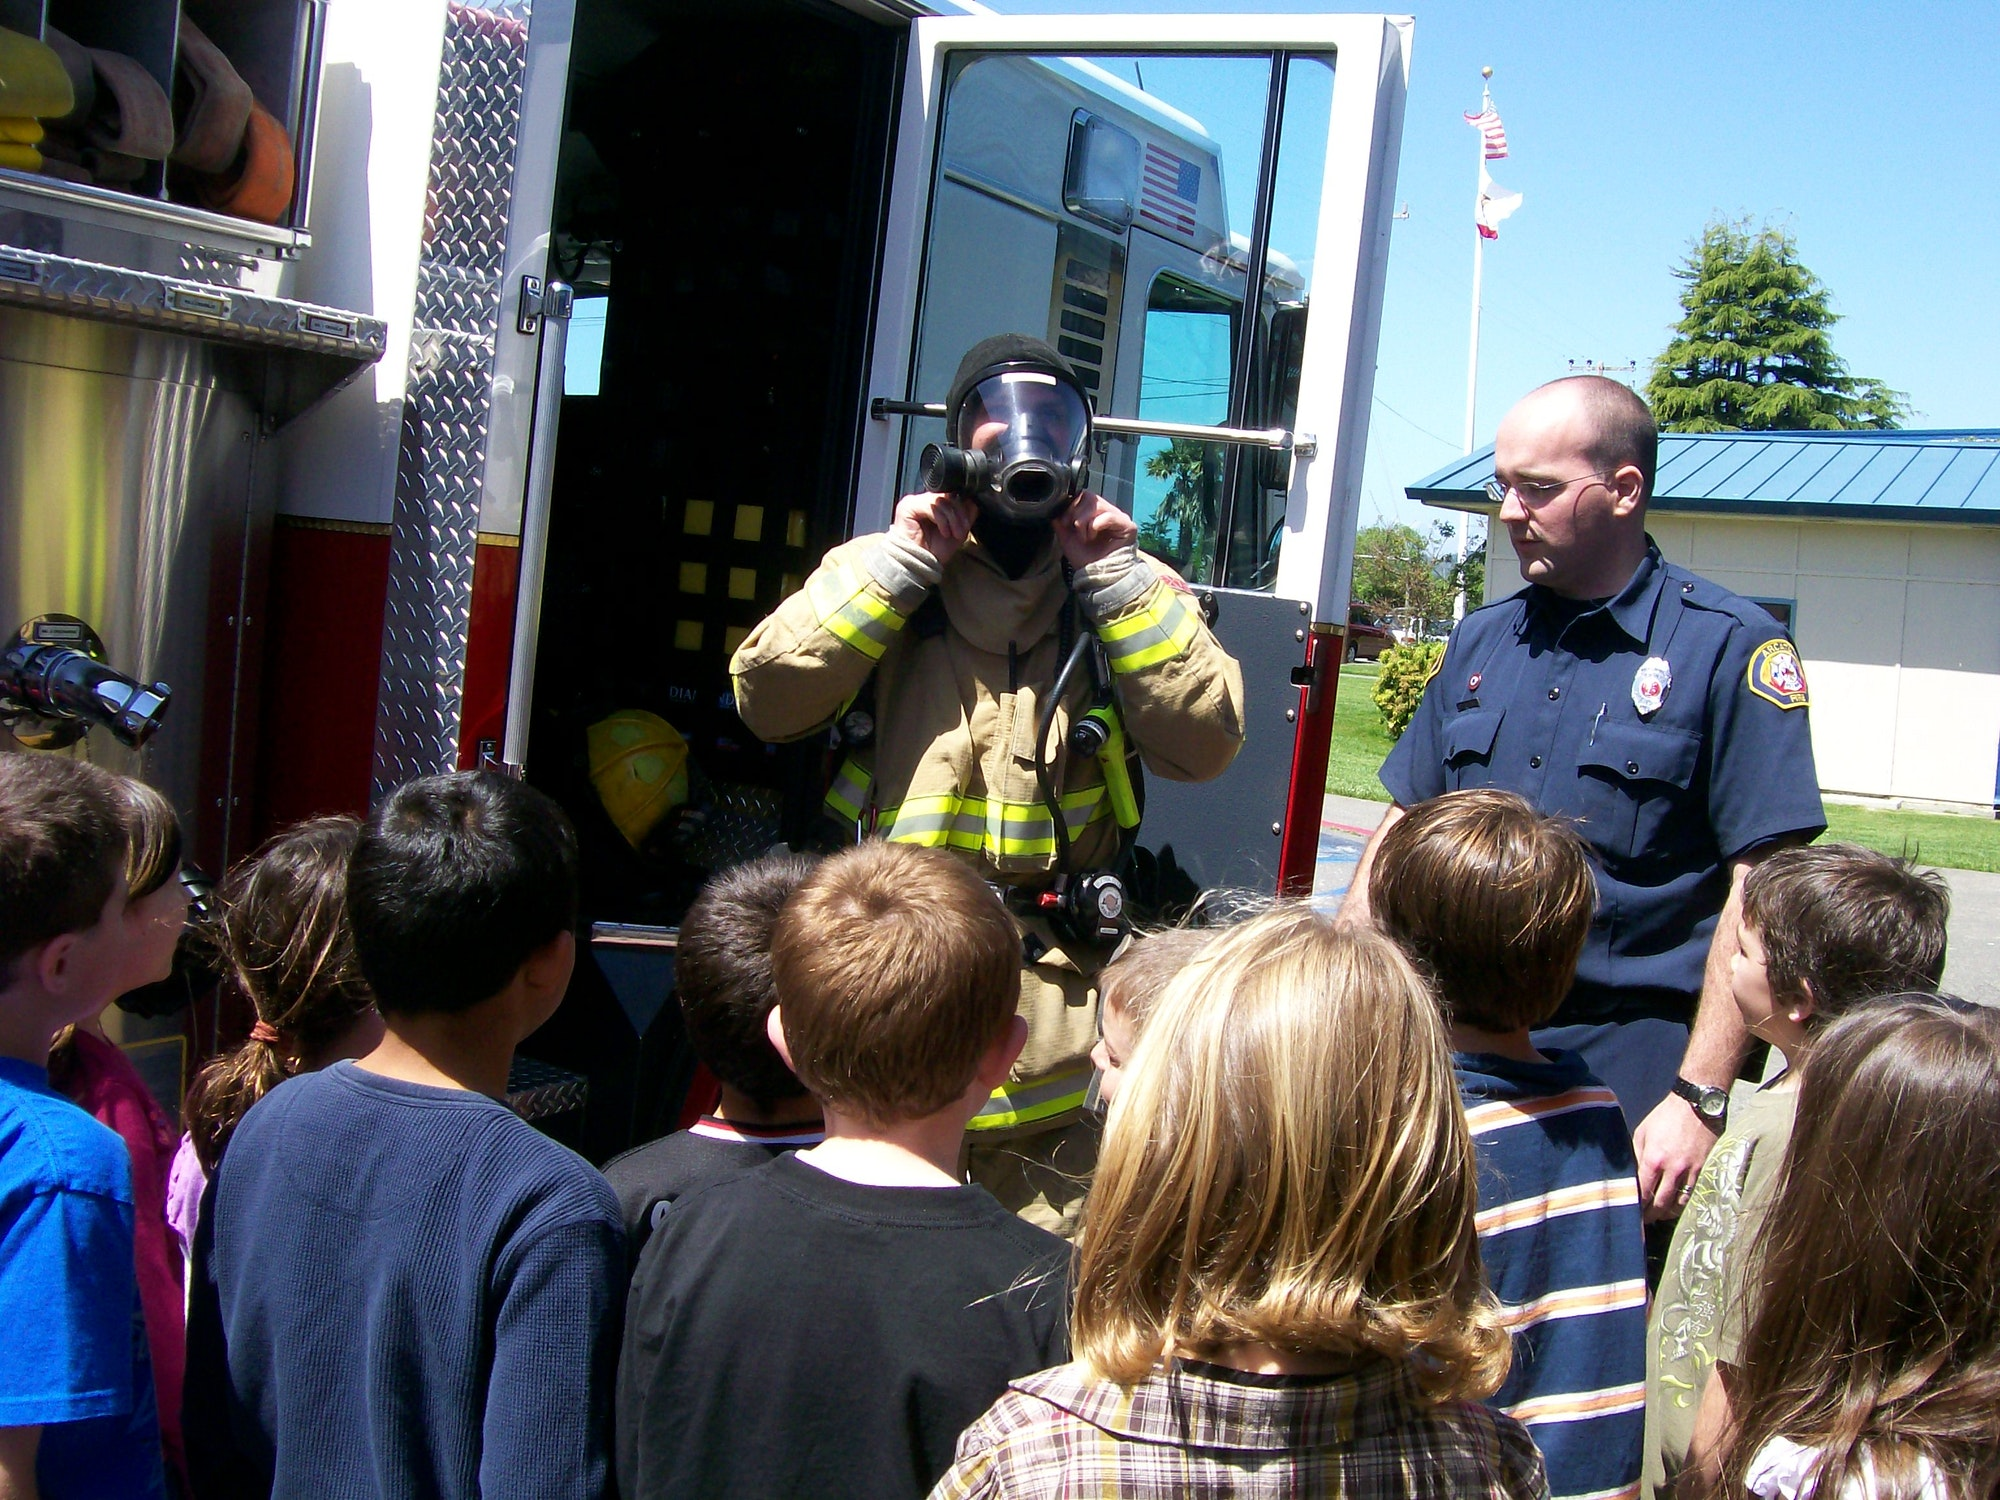 Firefighter in safety gear at a public education event.